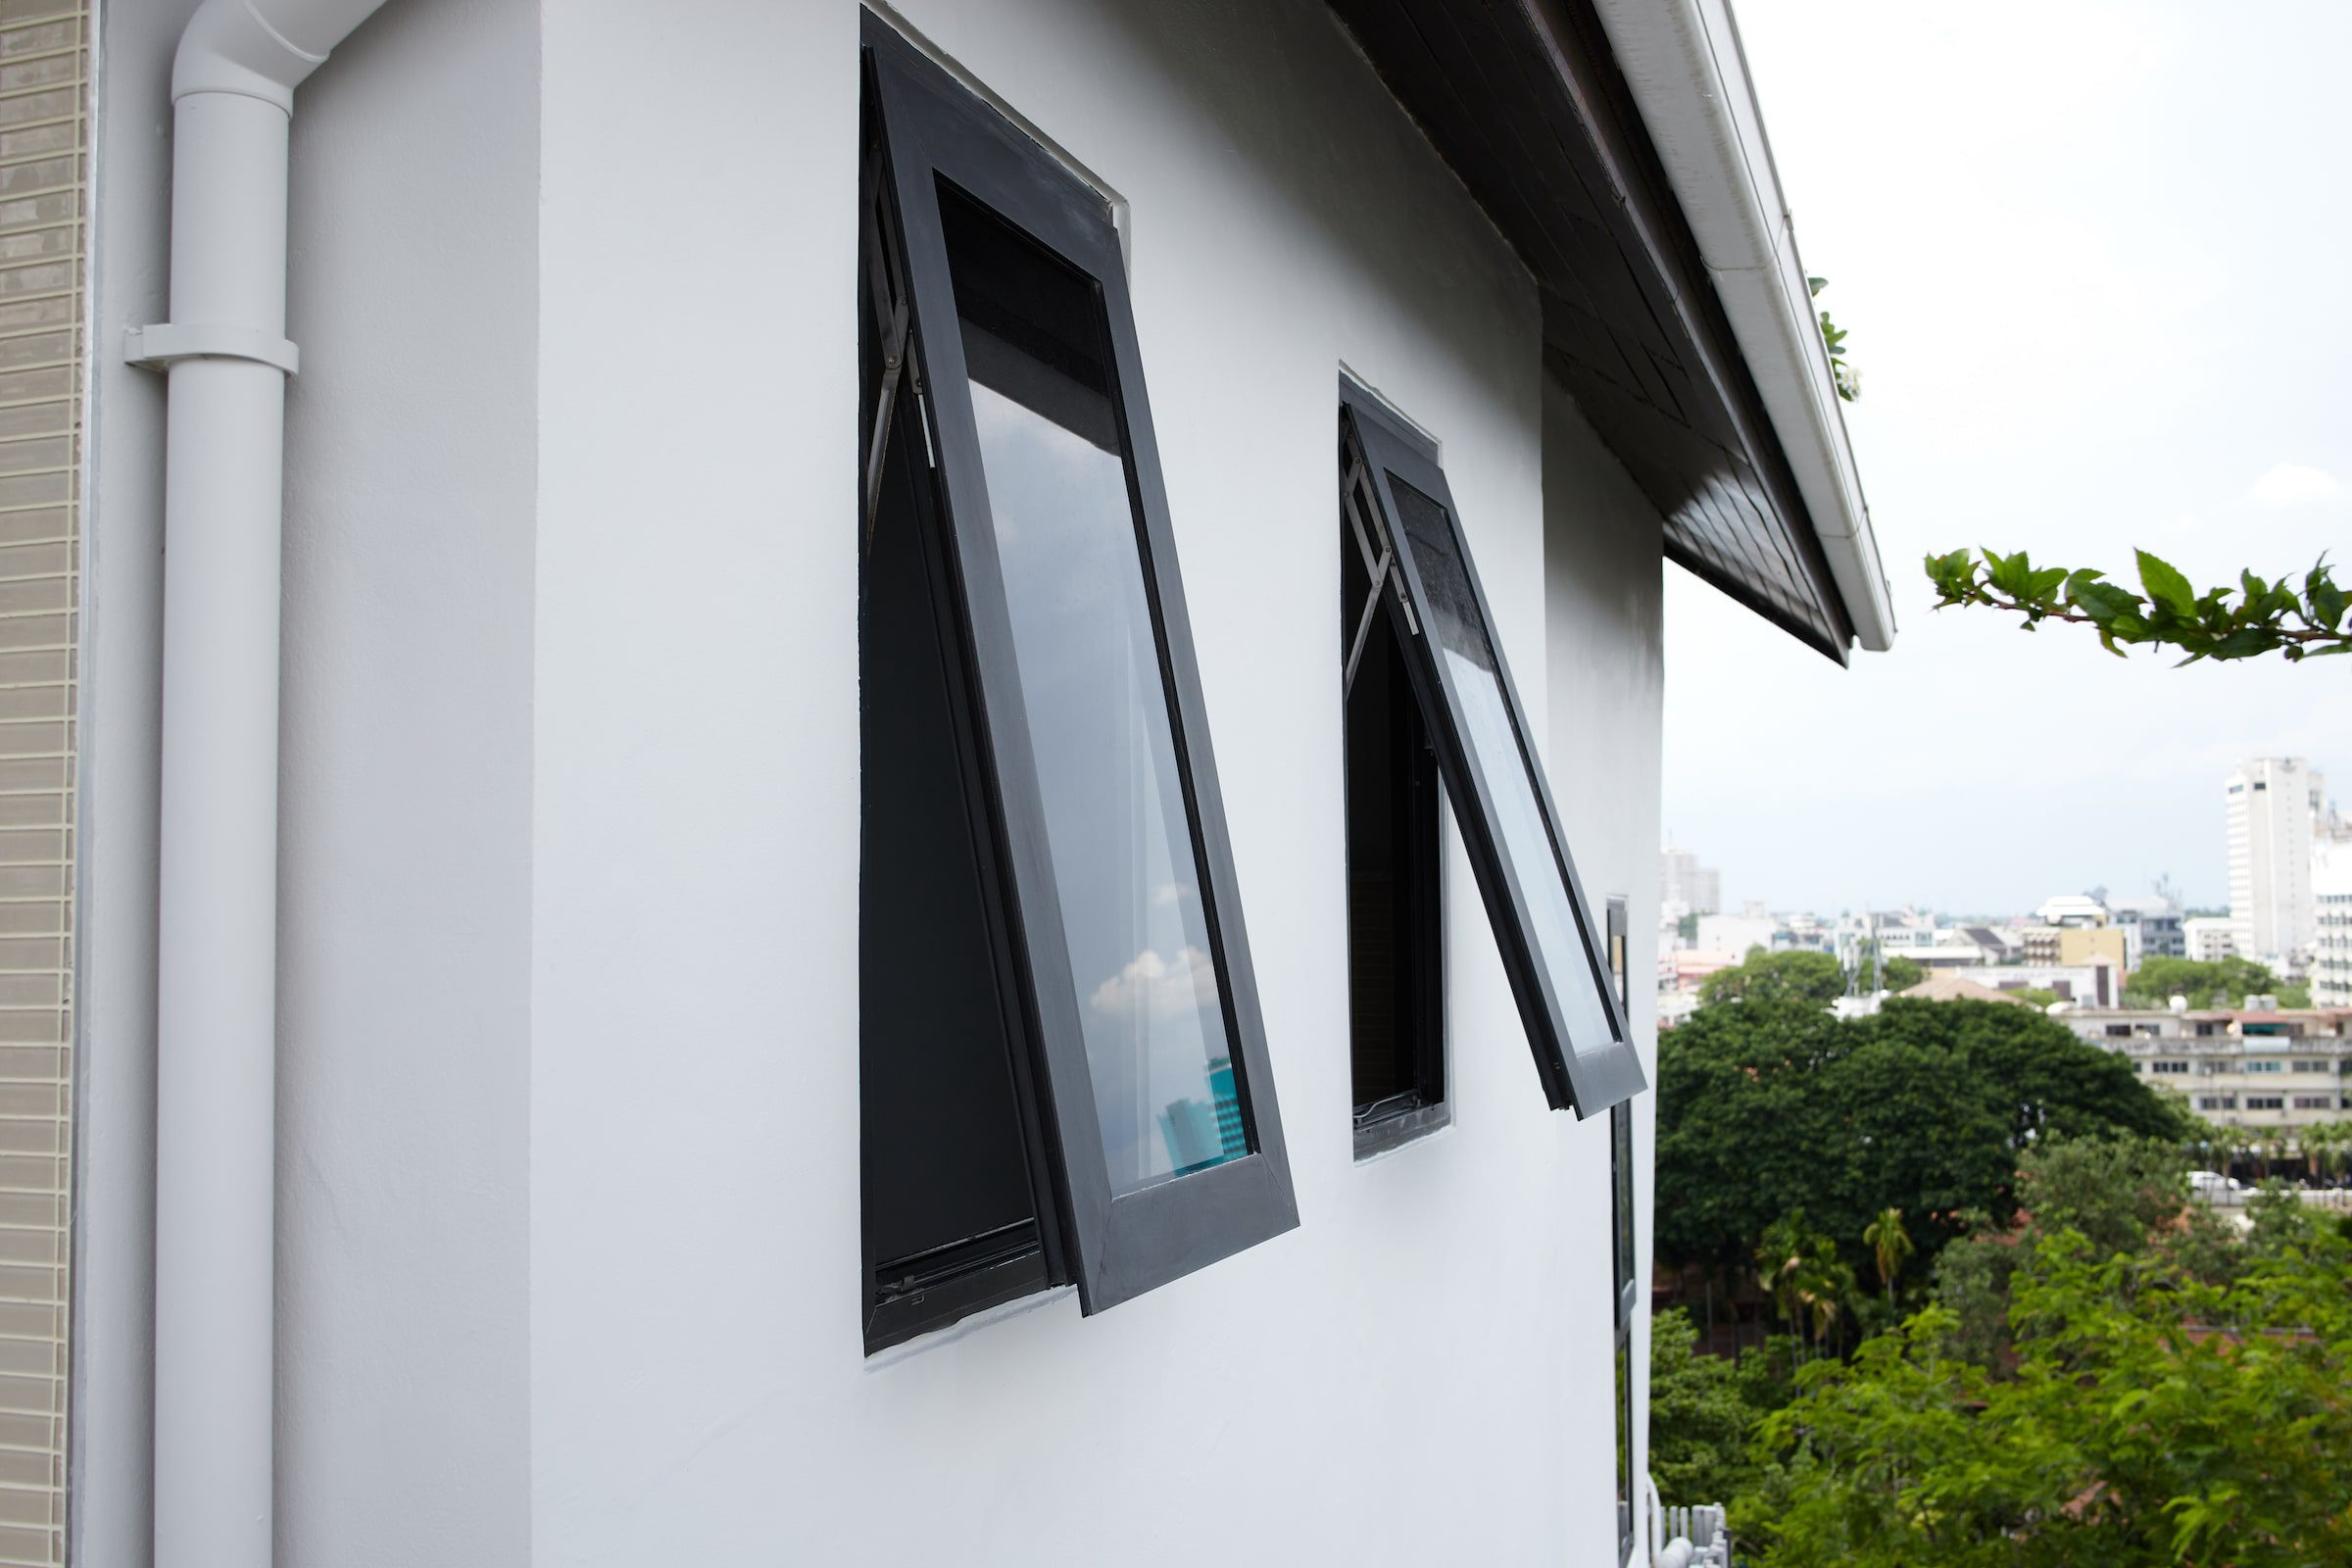 newly fitted windows in a modern house